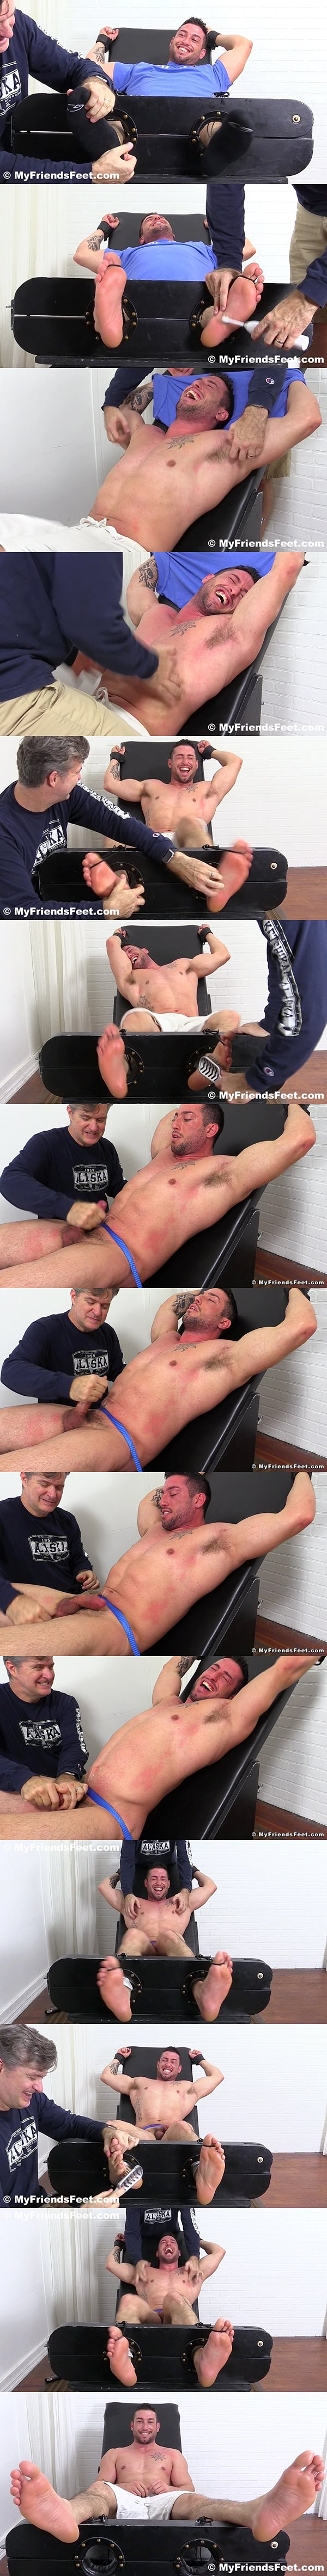 Hot muscle hunk Casey More gets his muscular body tickled before he gets jerked off at Myfriendsfeet 02